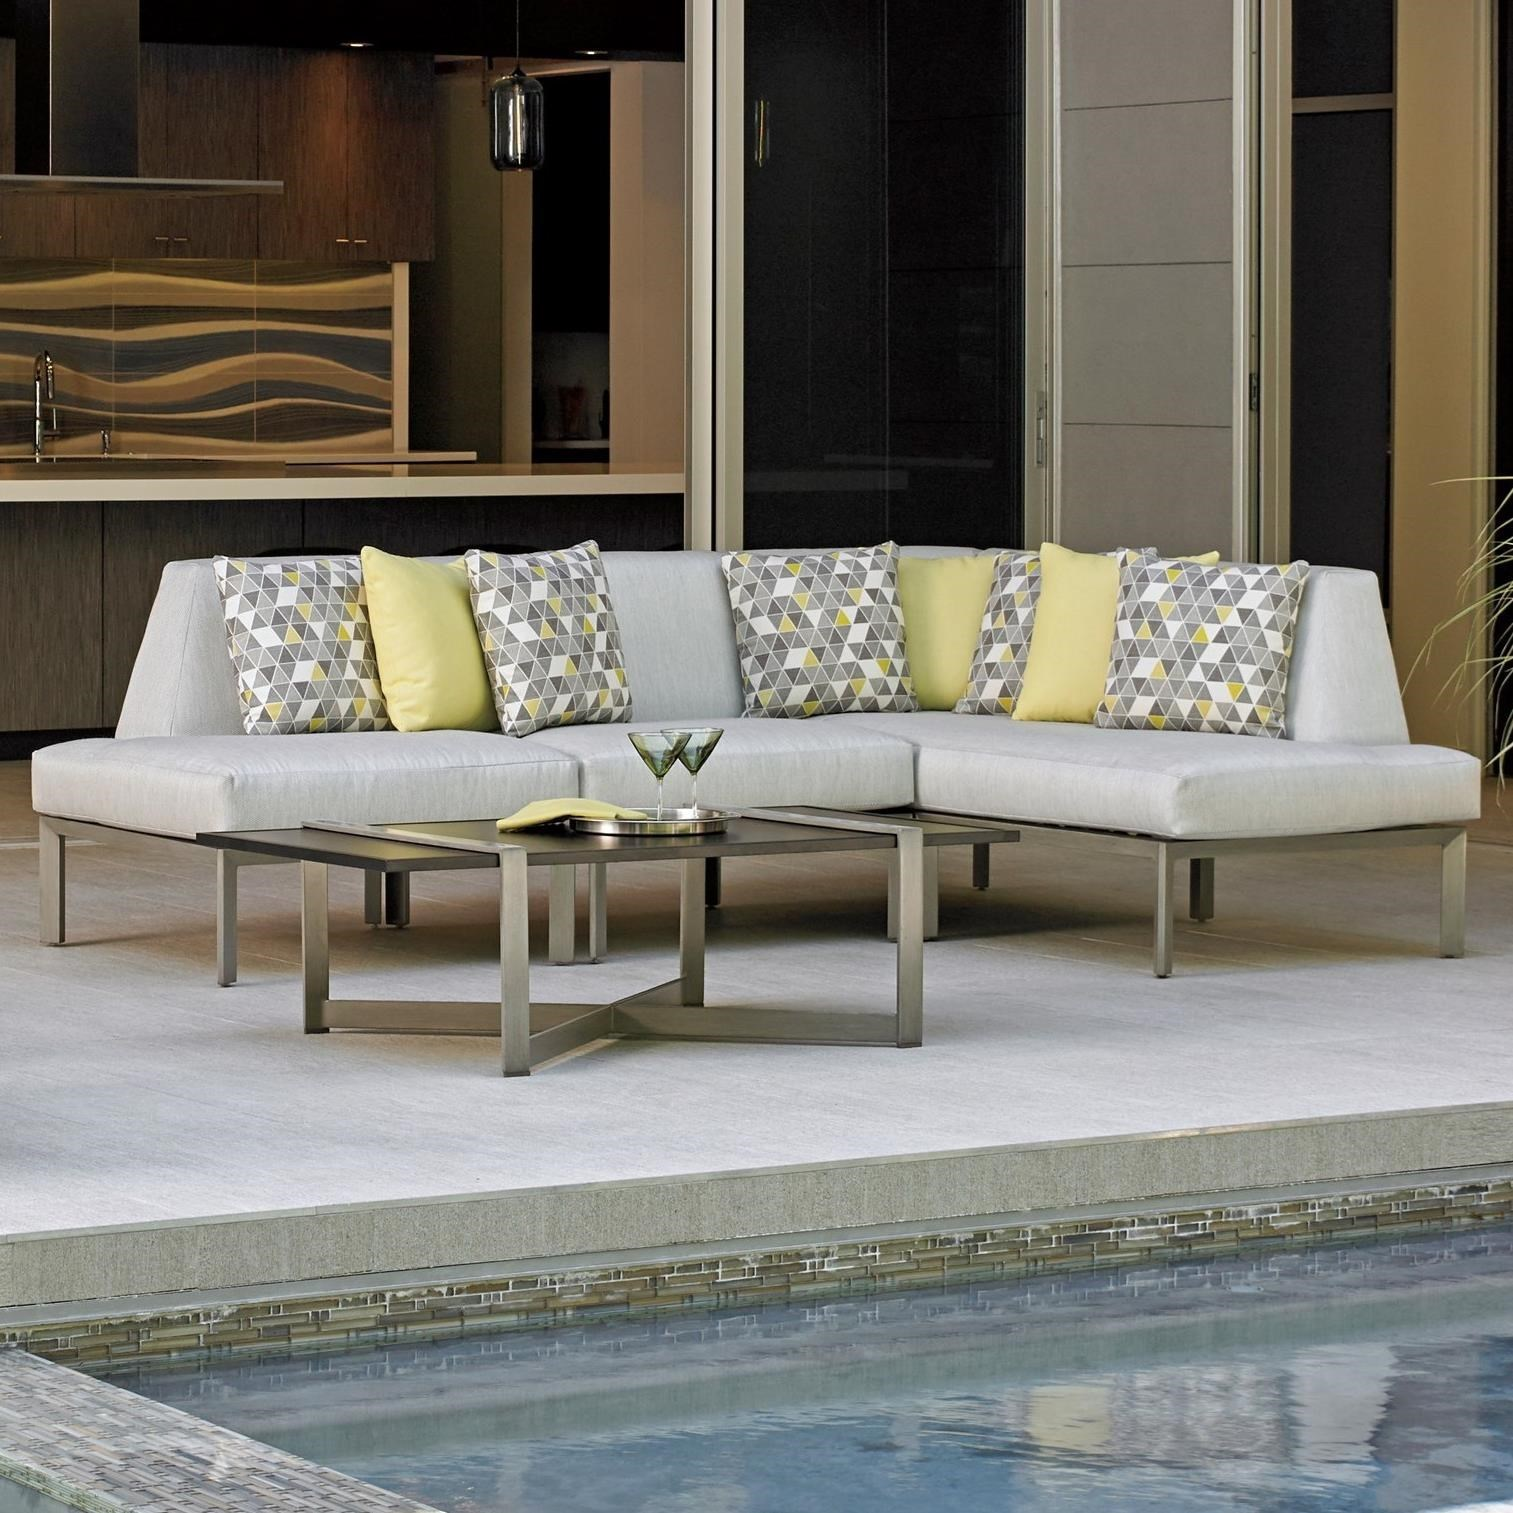 Charmant Tommy Bahama Outdoor Living Del Mar3 Pc L Sectional ...